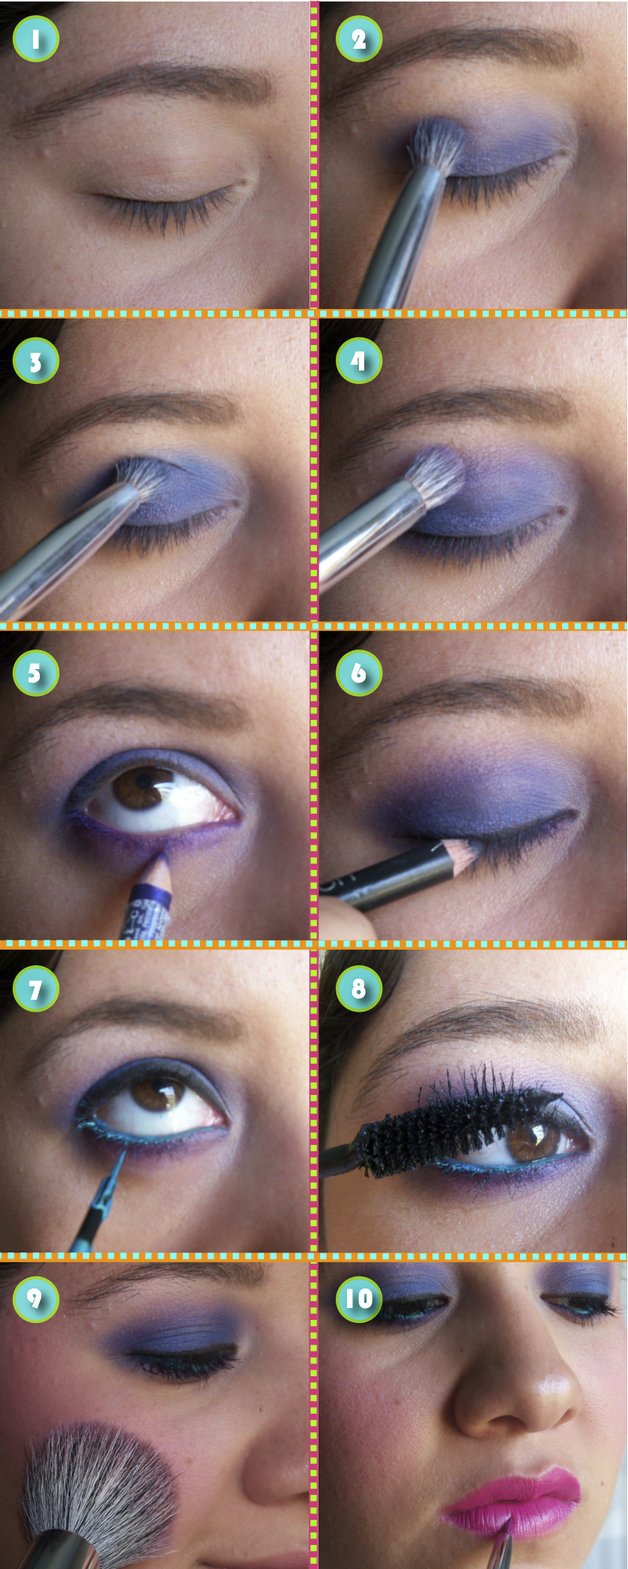 How to do 70s eye makeup